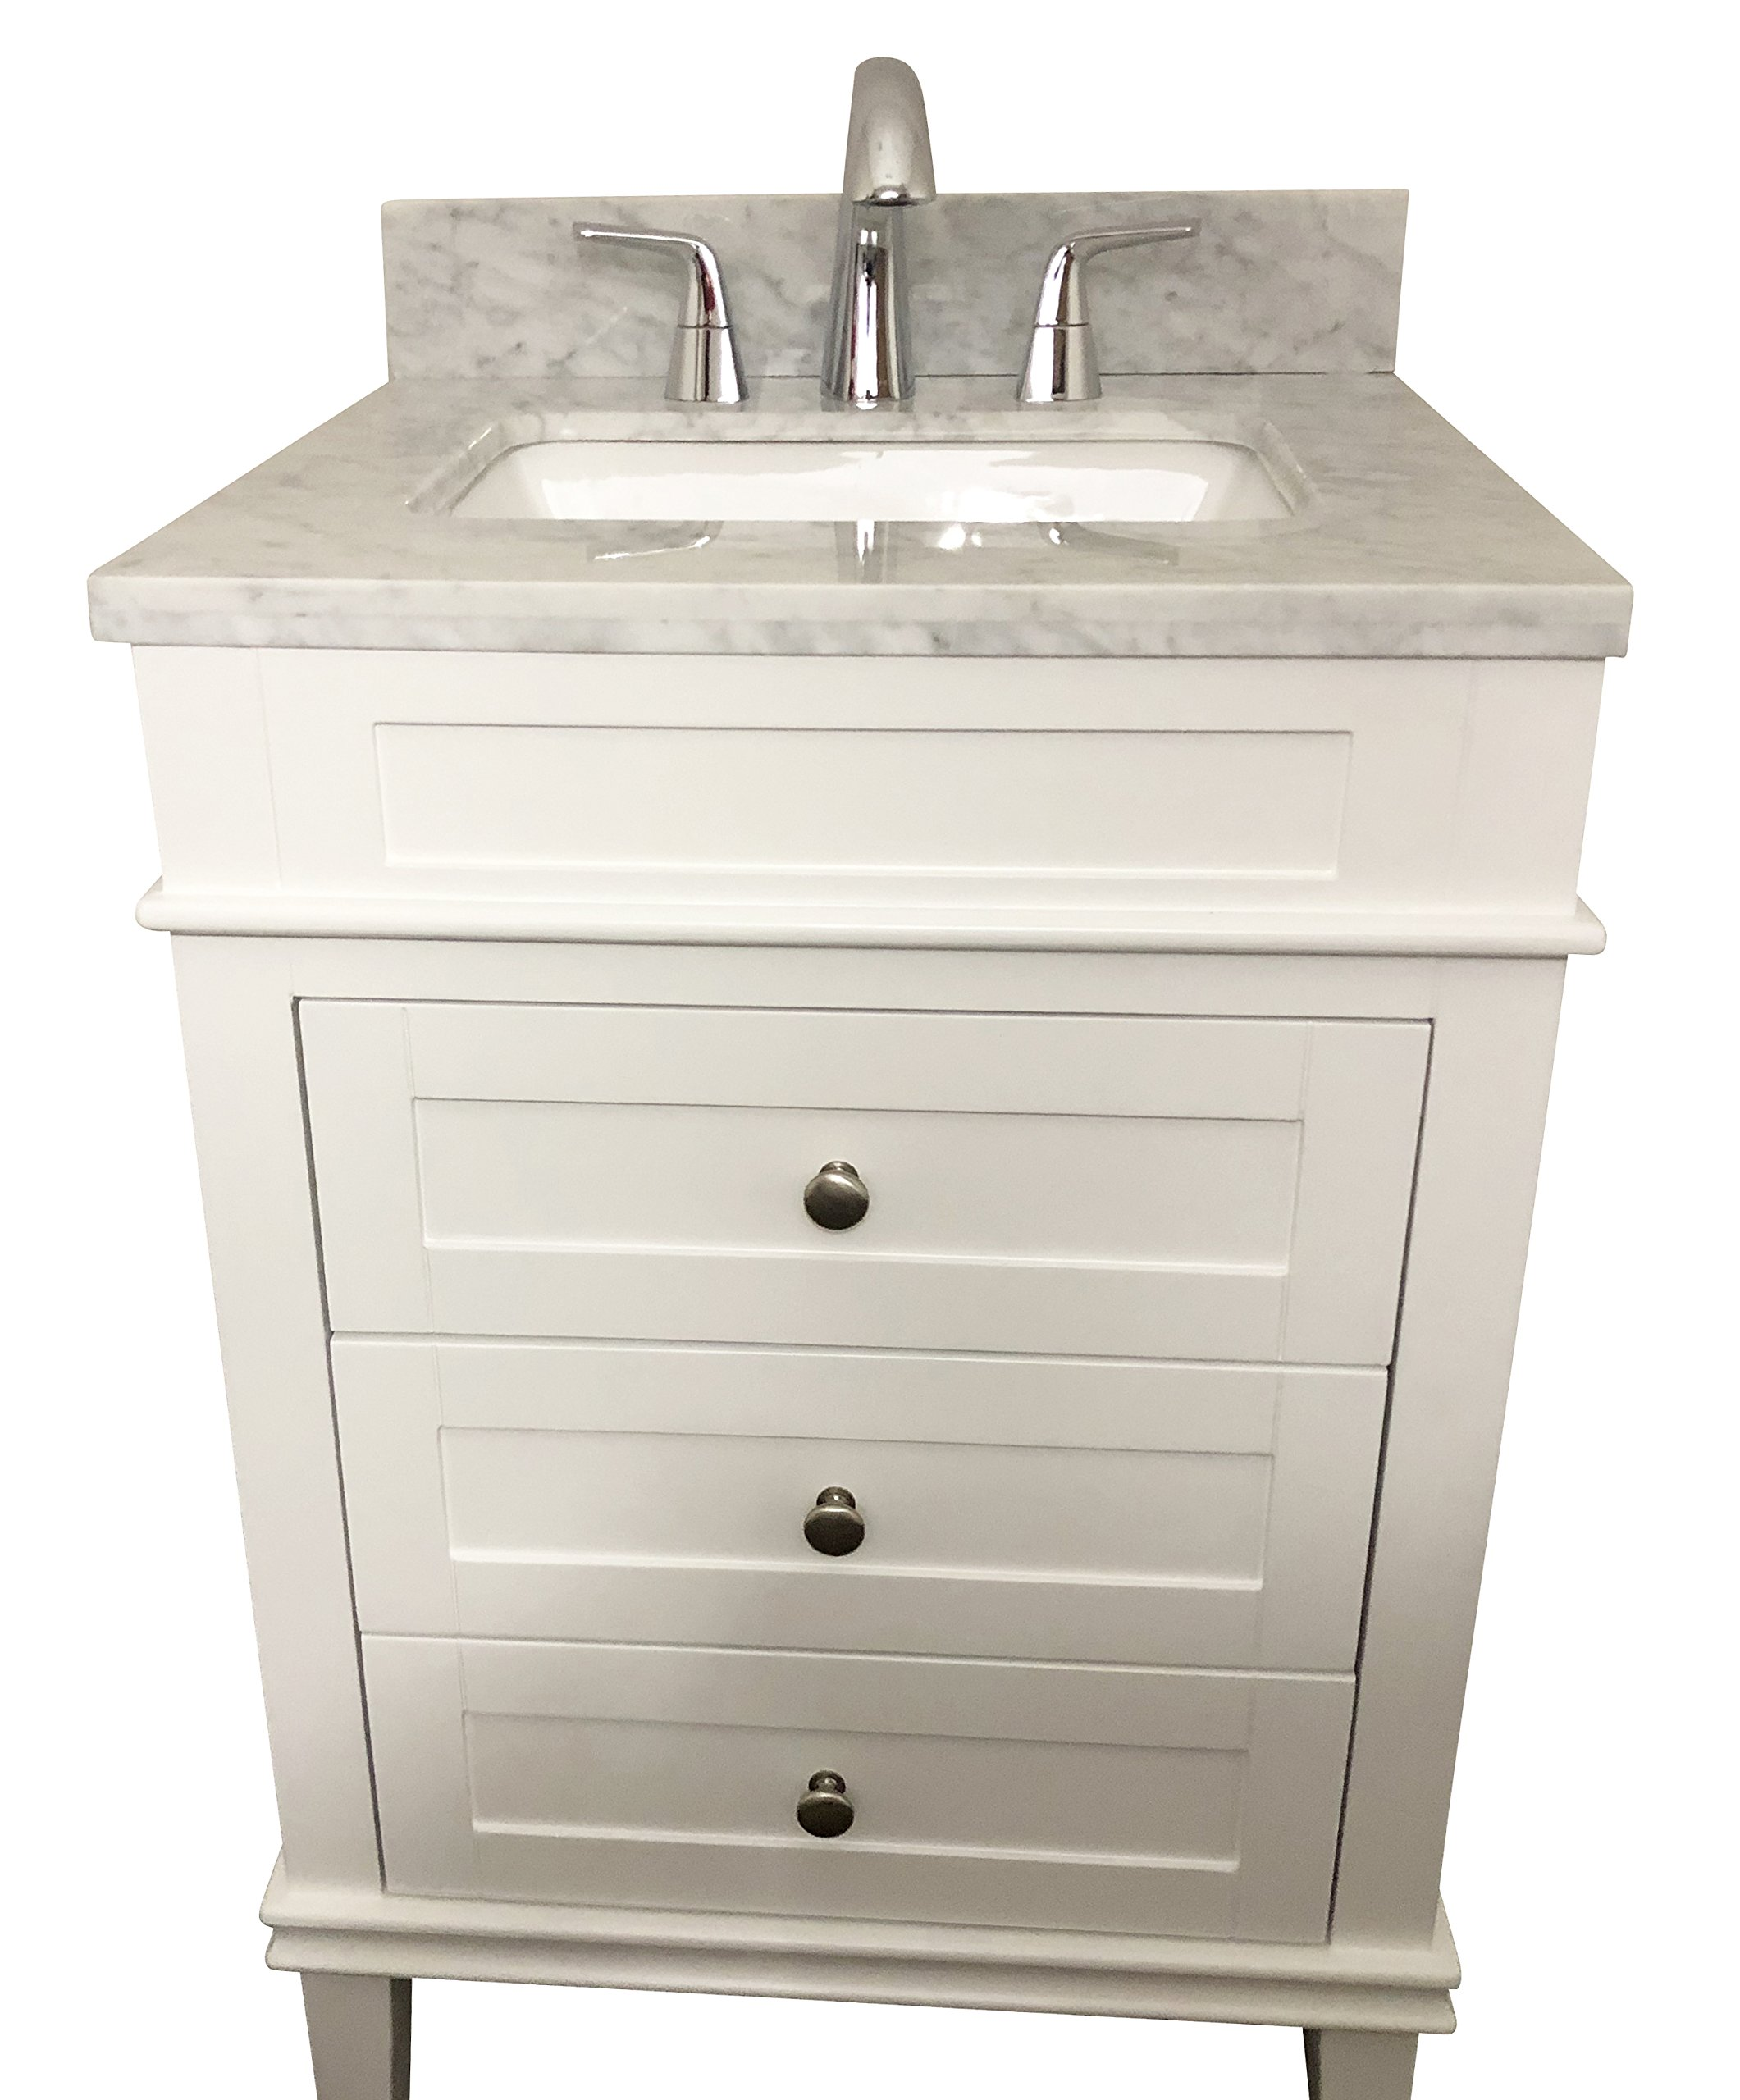 Buy 24 Bathroom Vanity Solid Wood Cabinet Stone Top Vessel